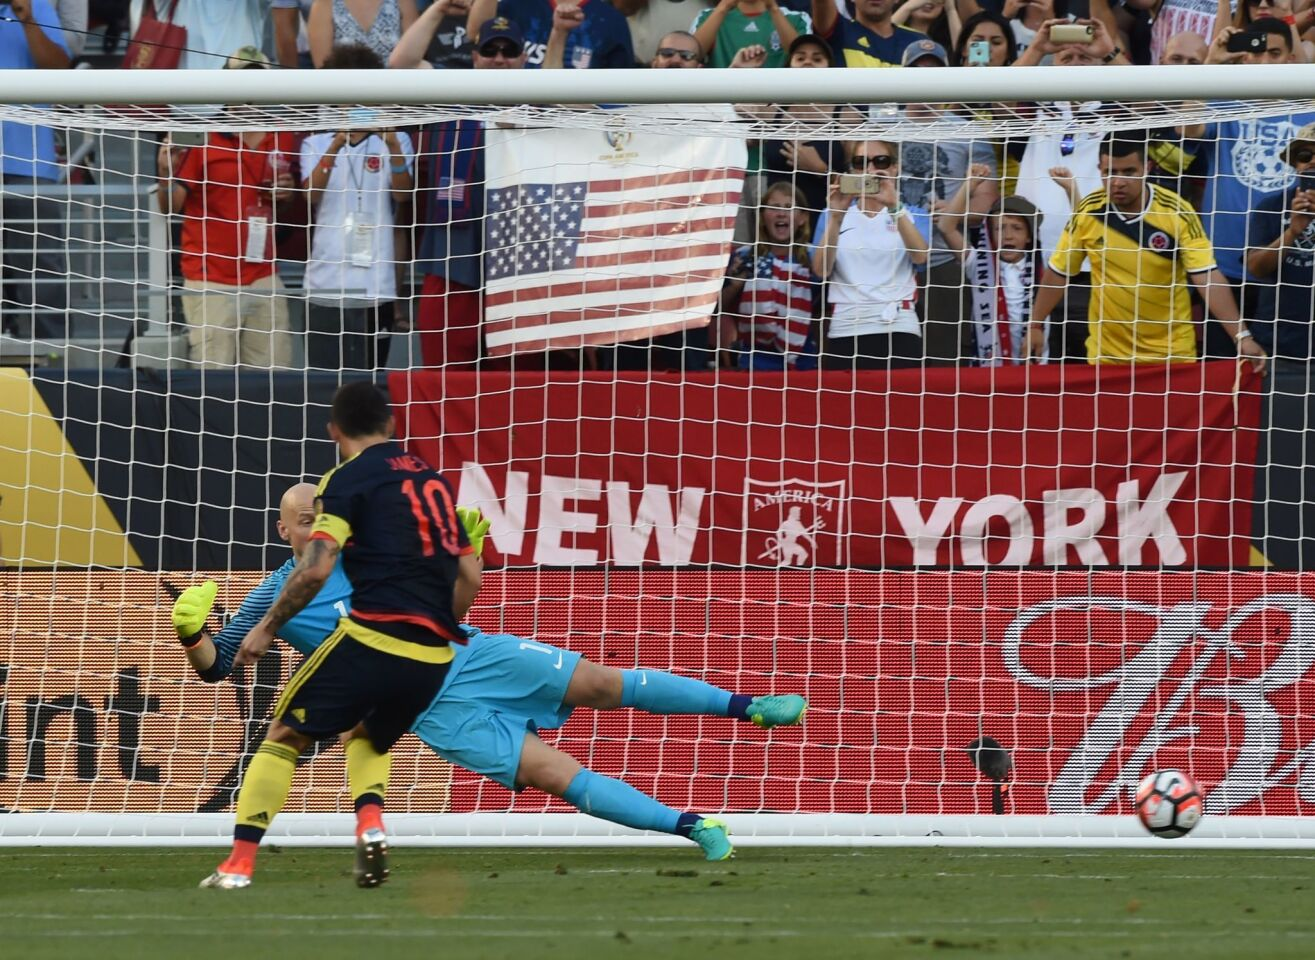 Colombia's James Rodriguez scores a penalty past USA's goalkeeper Brad Guzan during the Copa America Centenario football tournament match in Santa Clara, California, United States, on June 3, 2016. / AFP PHOTO / MARK RALSTONMARK RALSTON/AFP/Getty Images ** OUTS - ELSENT, FPG, CM - OUTS * NM, PH, VA if sourced by CT, LA or MoD **